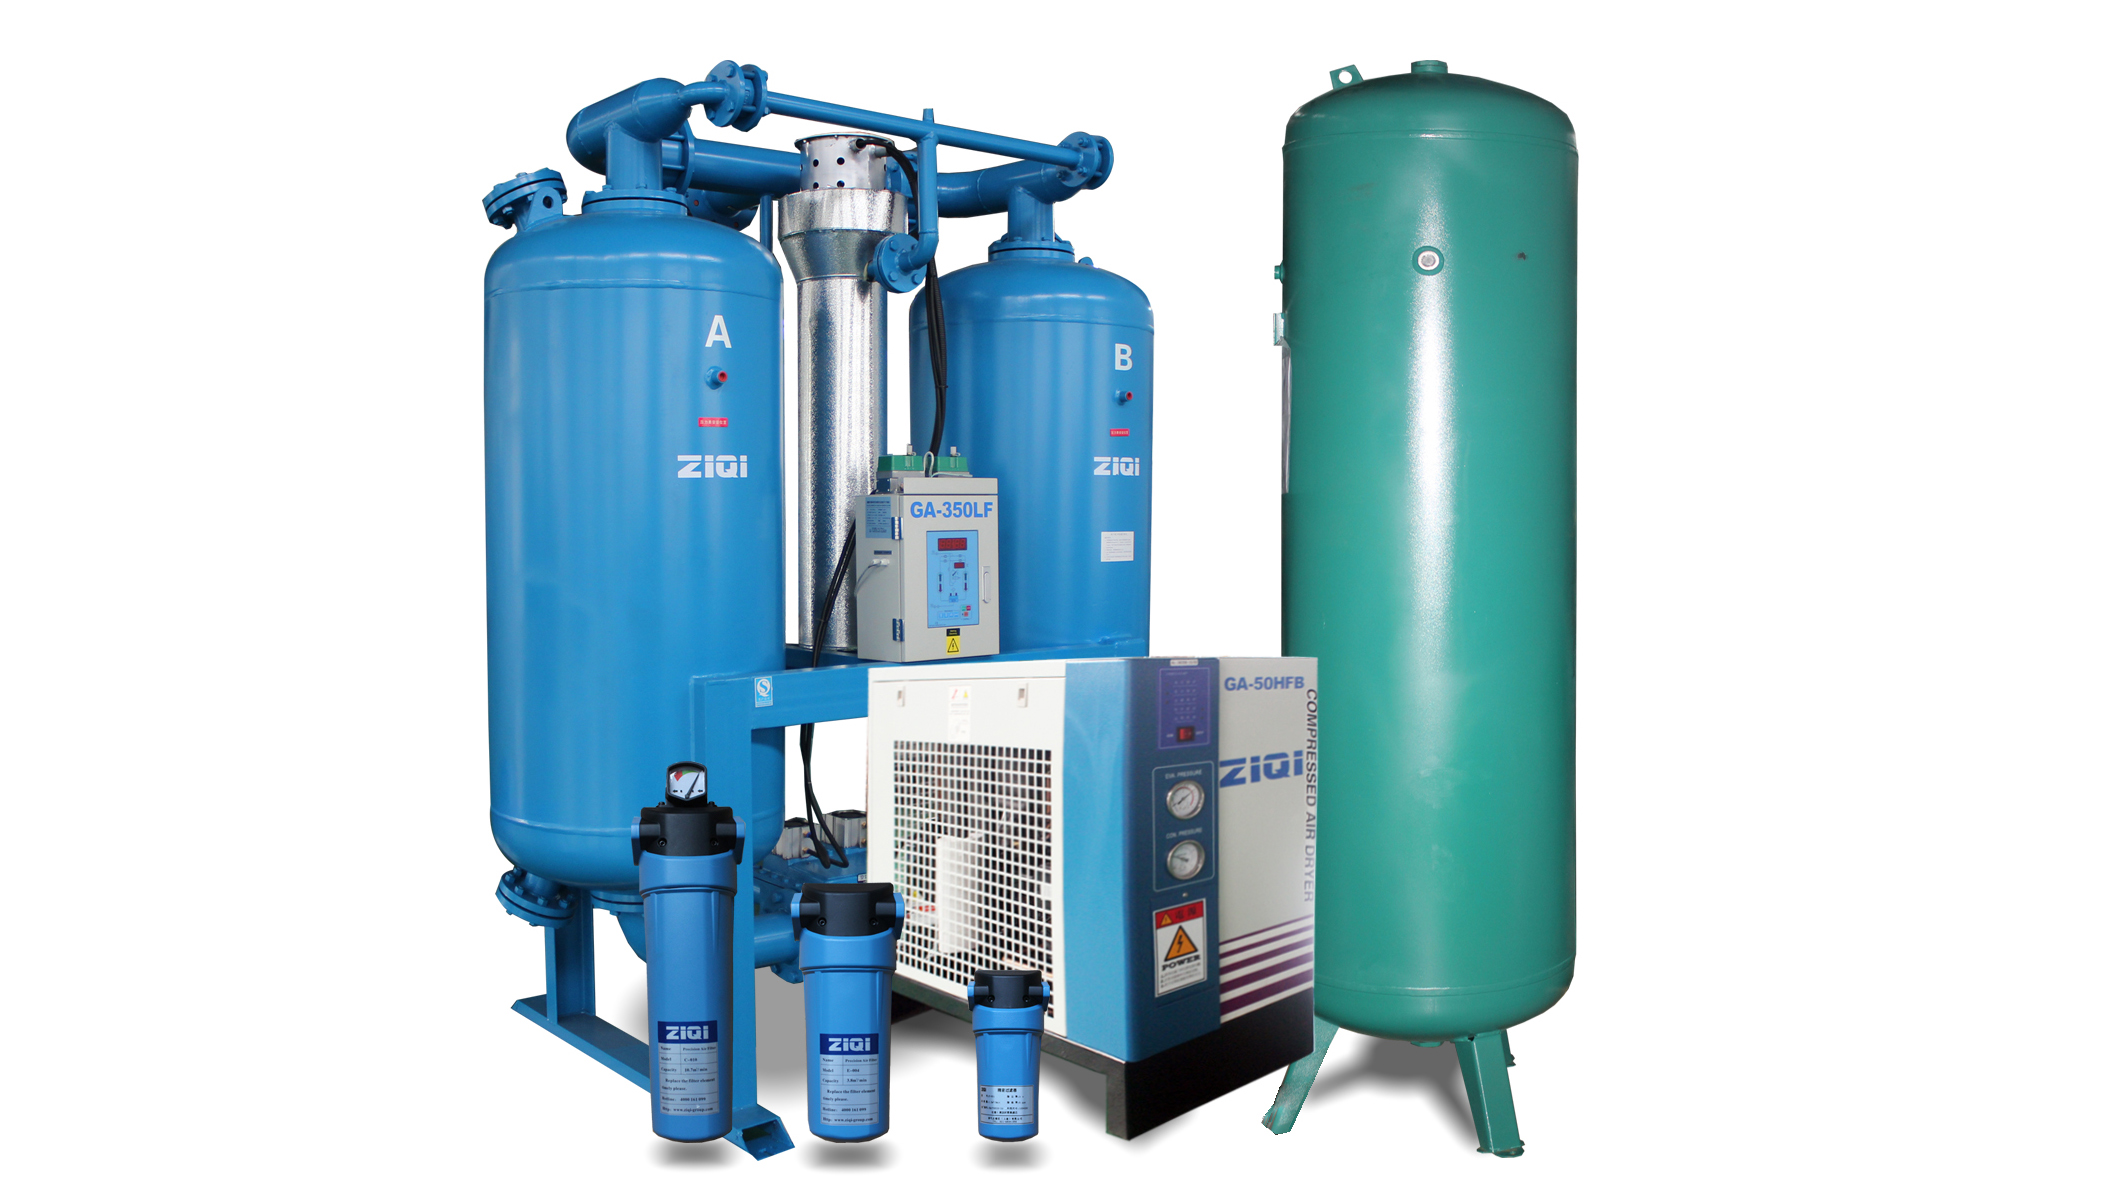 Bsest Compressed Air Treatment Equipment Manufacturer